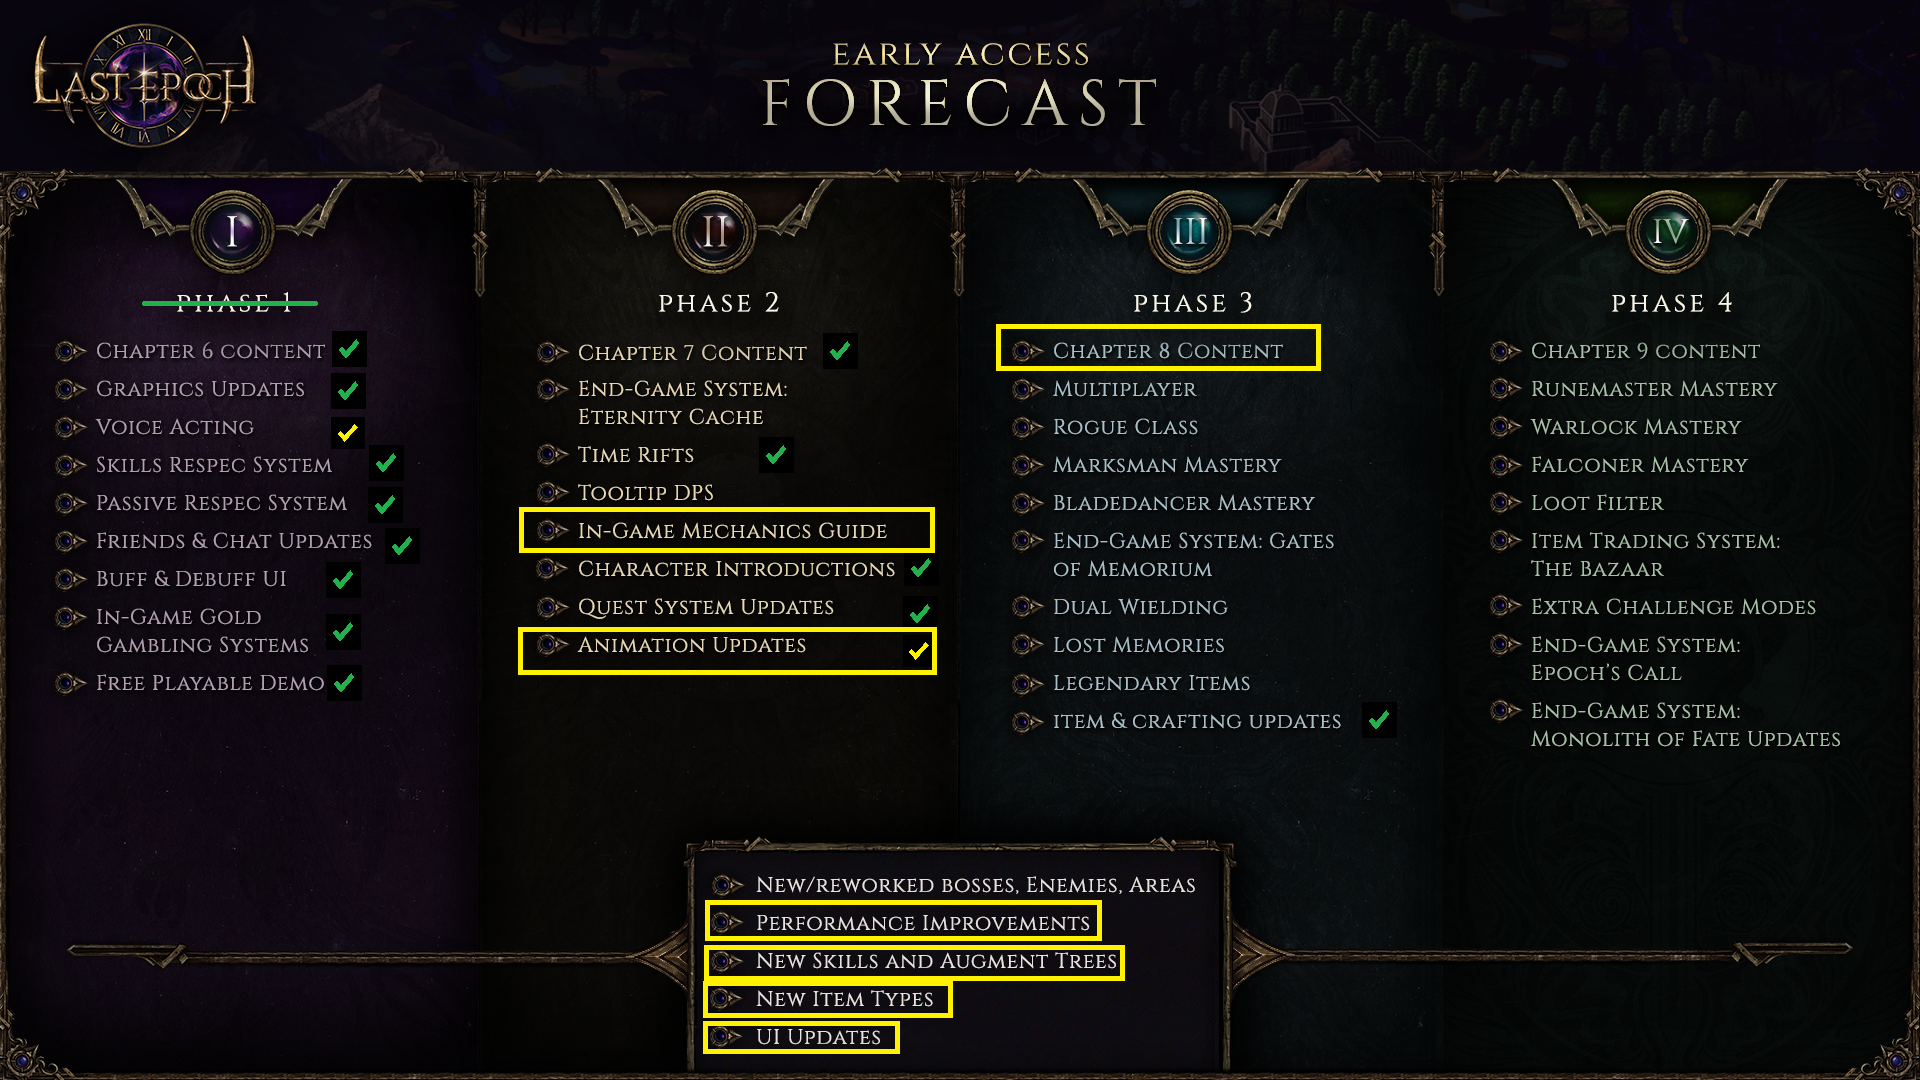 Patch Beta 0.7.8 takes huge steps into bringing many of promised features on the roadmap